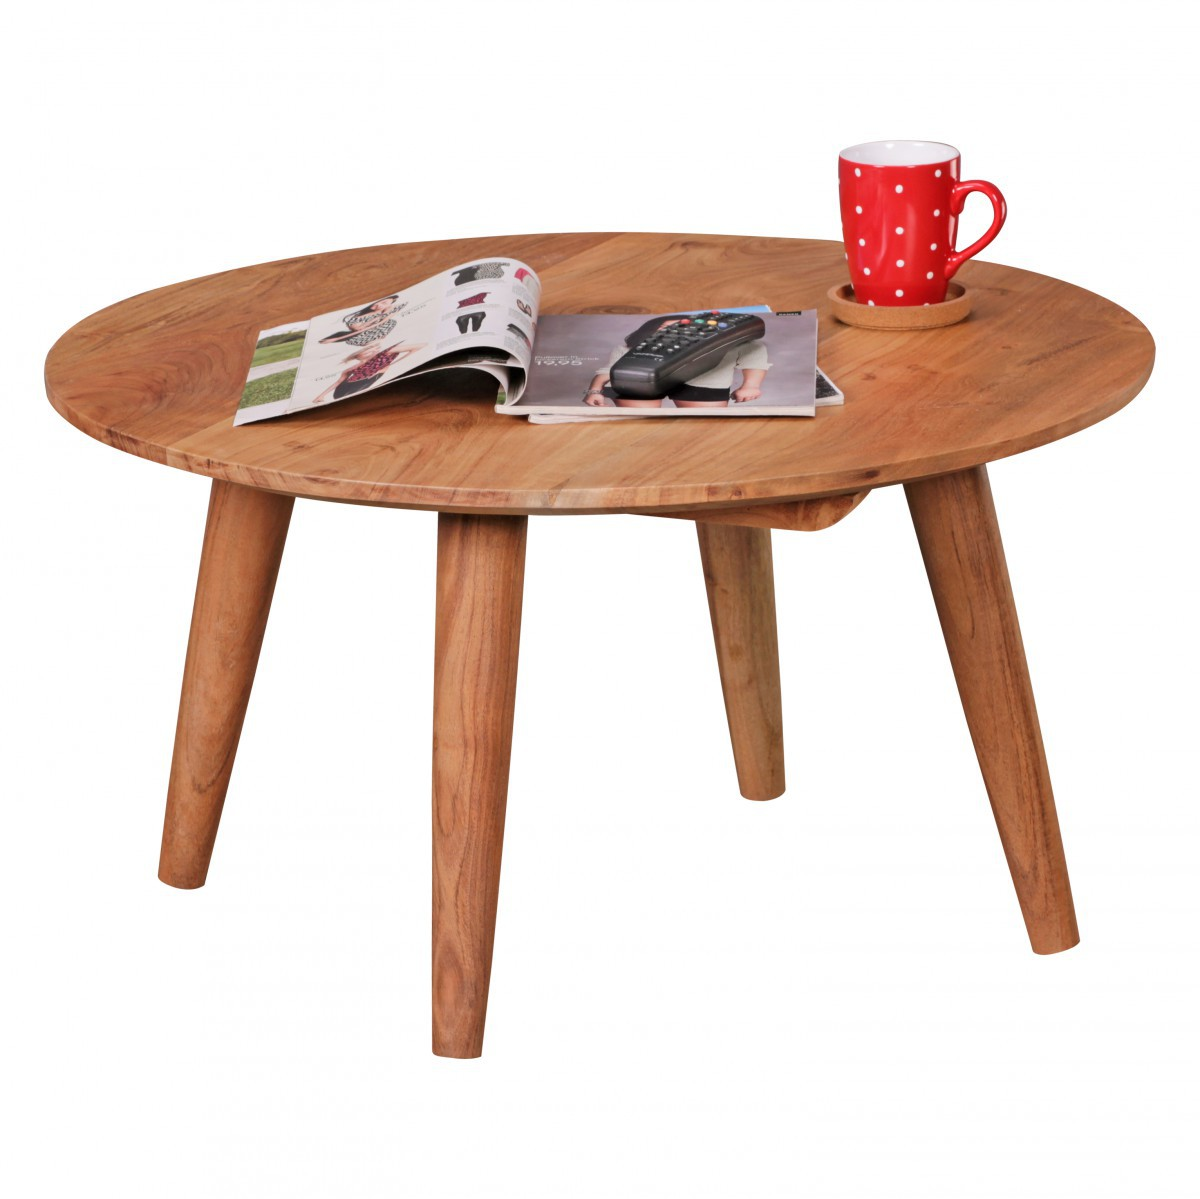 Finebuy table basse en bois massif acacia table basse - Table ronde en bois ikea ...